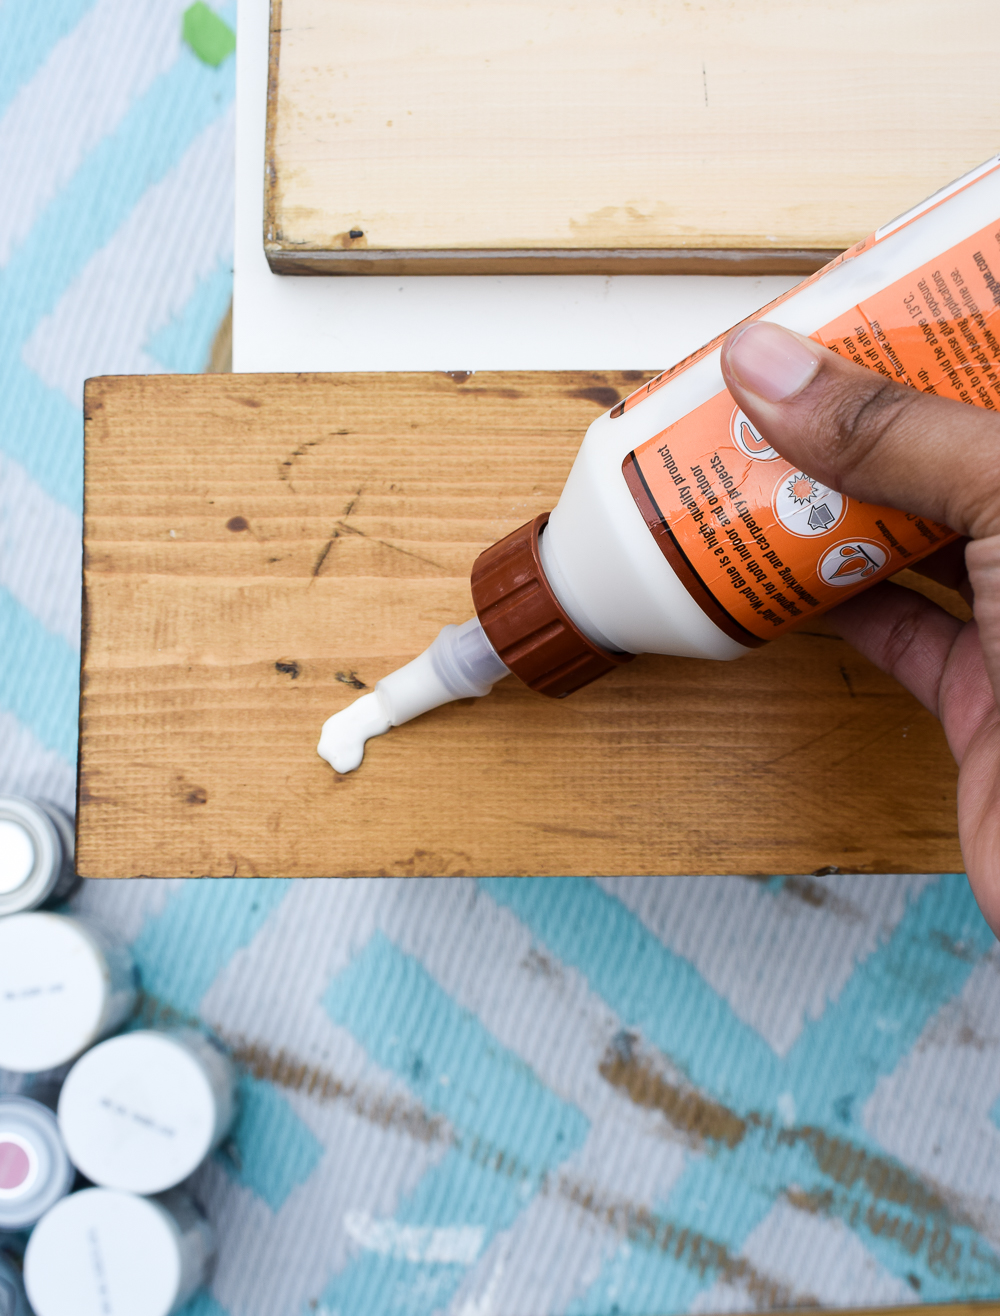 Applying wood glue to the woo plank